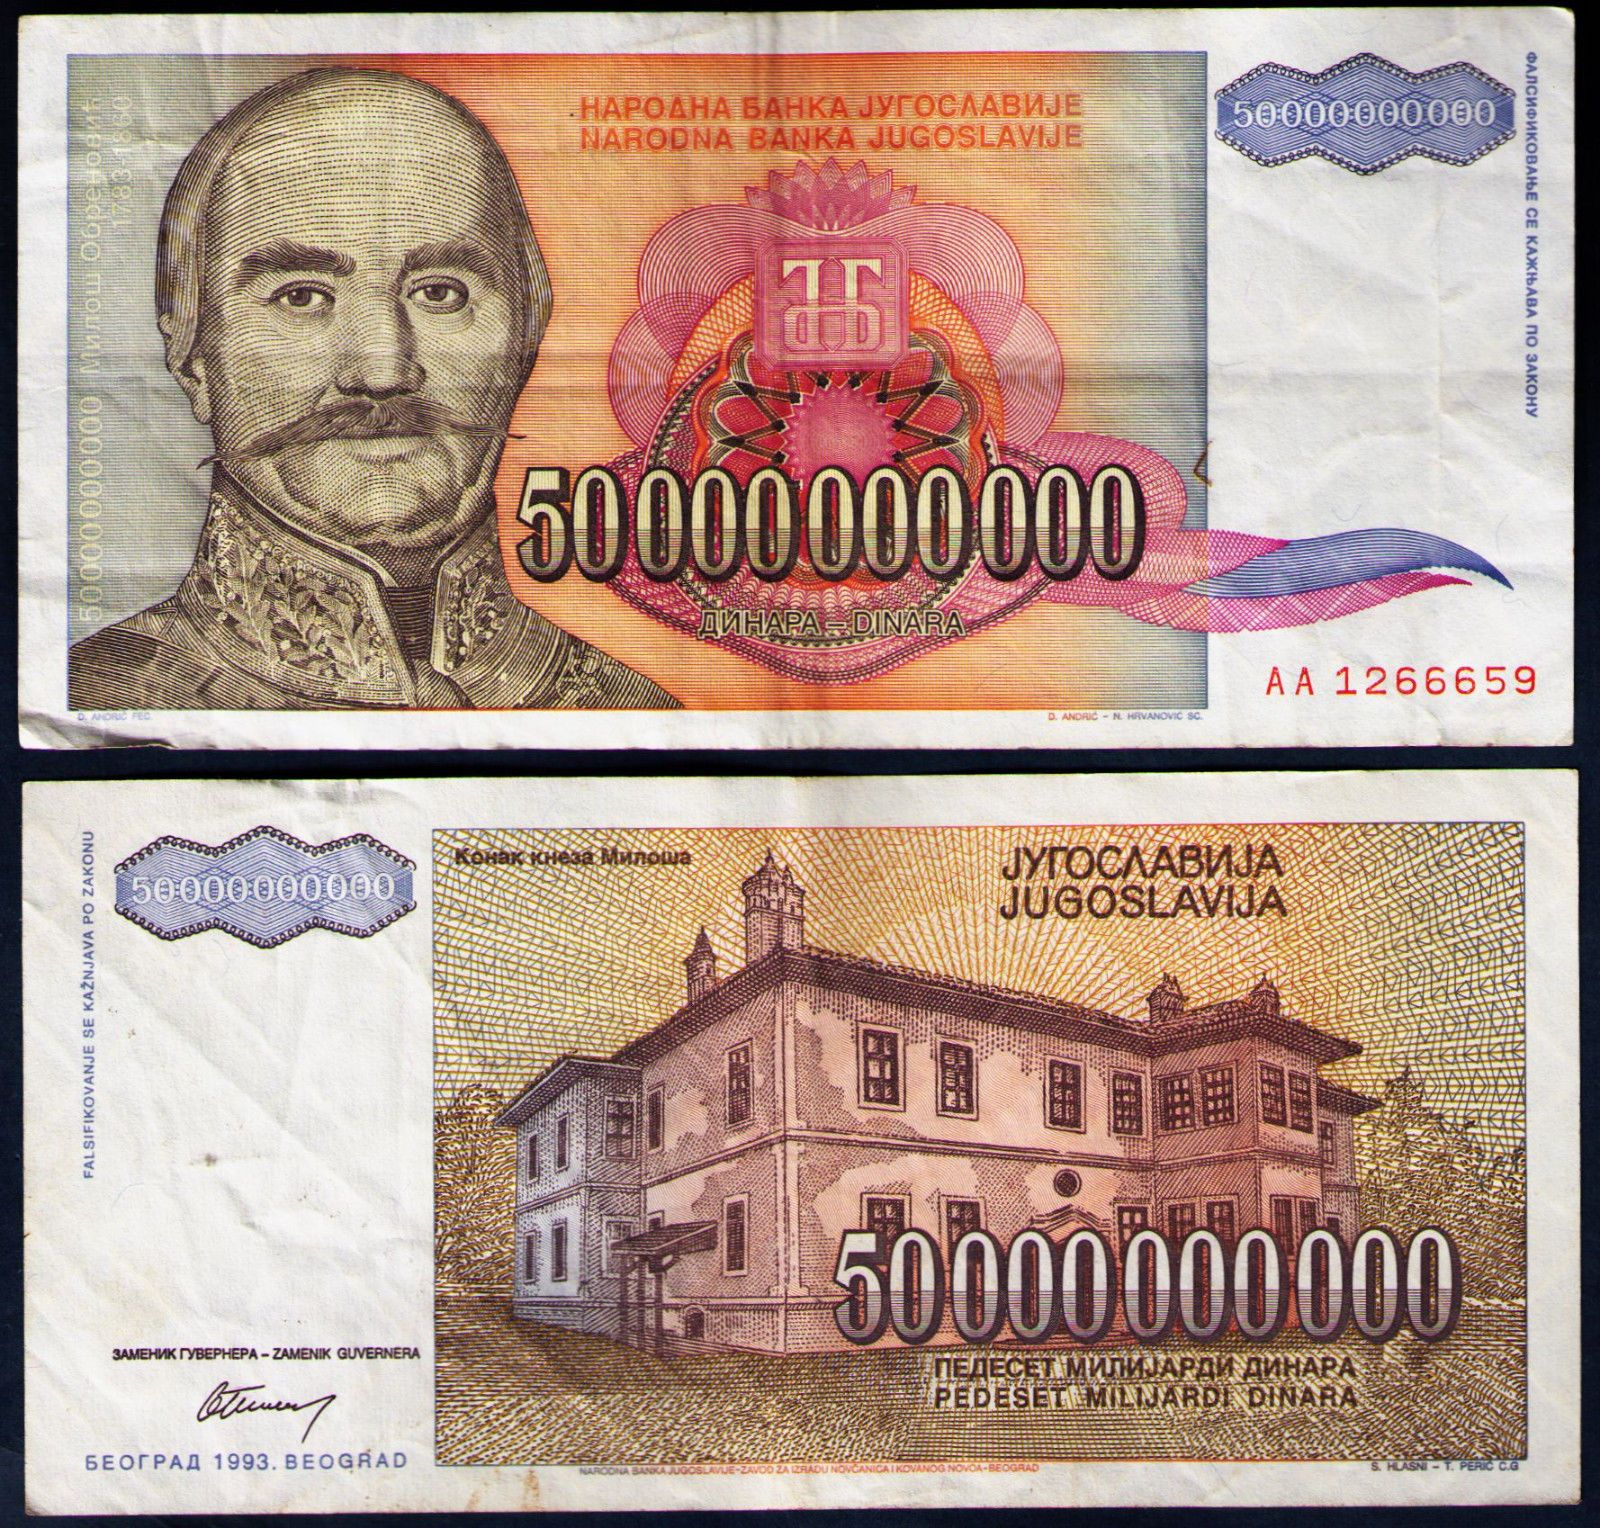 Get Your 50 Billion Yugoslavian Dinara Banknote For Your Collection Today Become A Billionaire